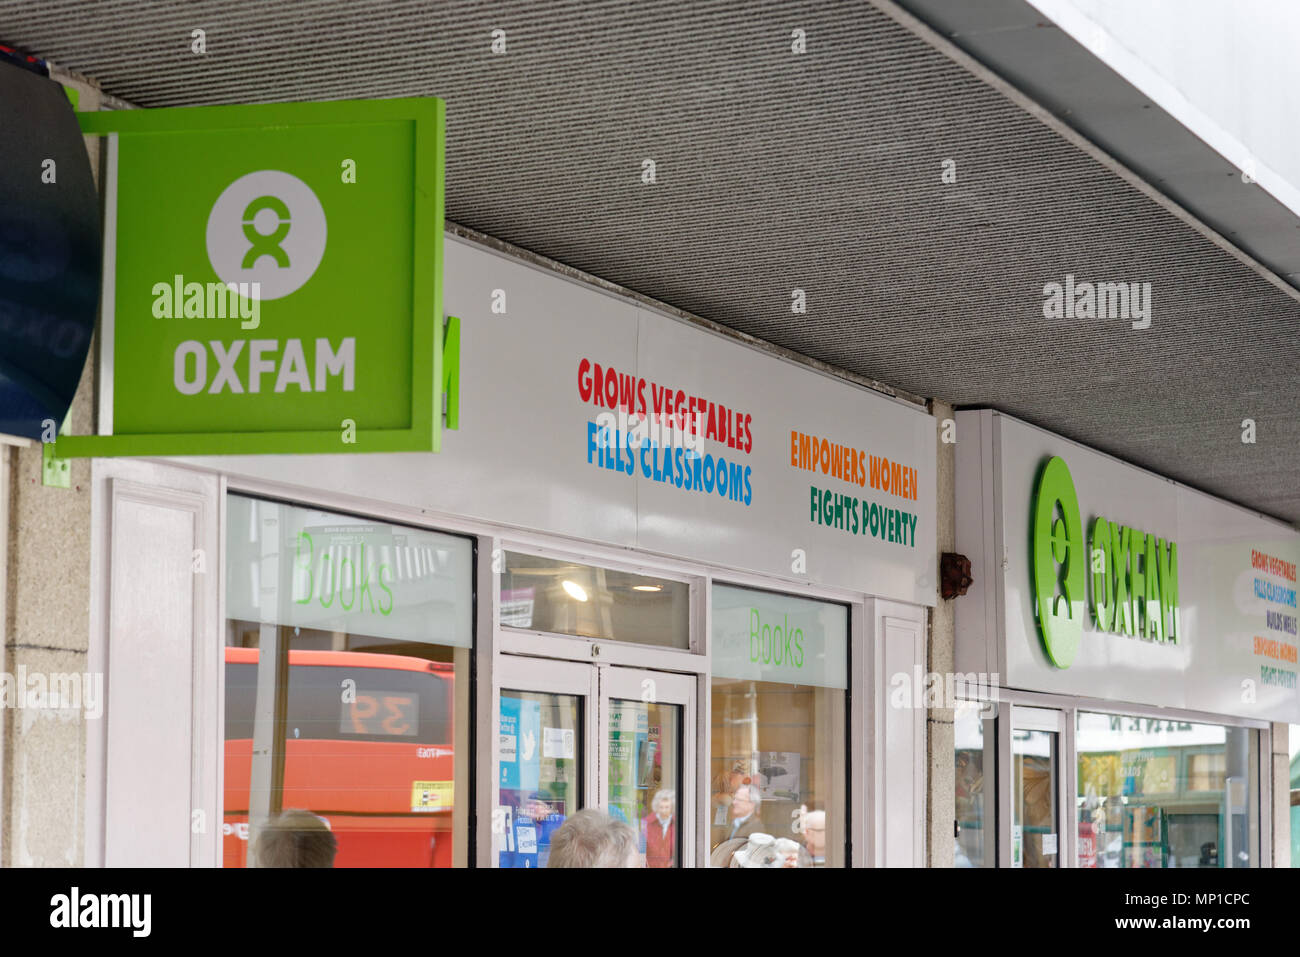 Oxfam shop front, with the slogans 'Empowers Women', 'Fights Poverty', 'Grows Vegetables' and 'Fills Classrooms' - Stock Image